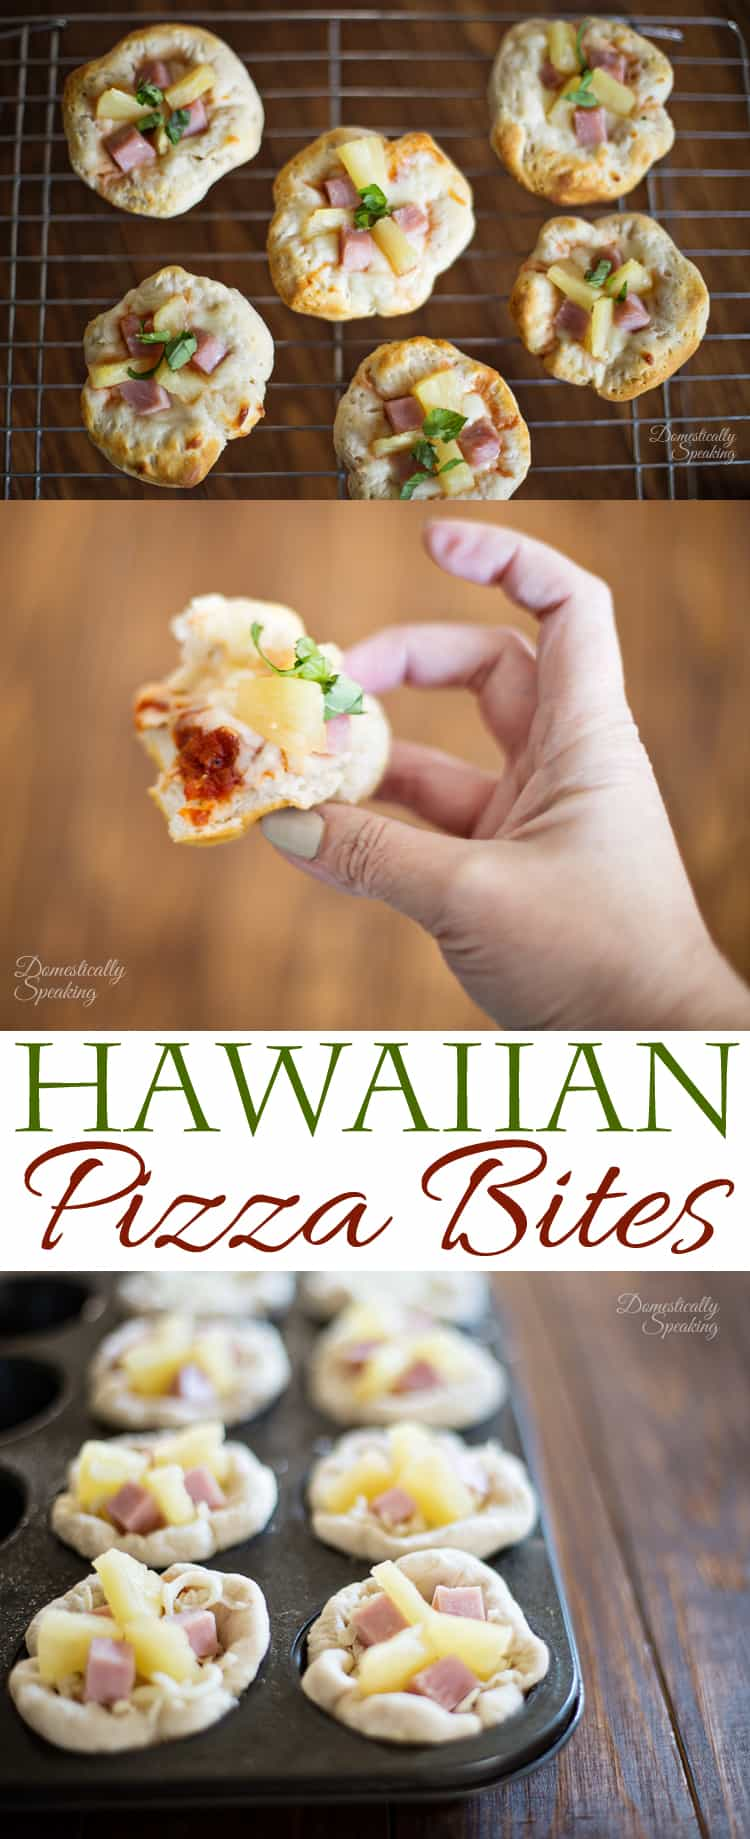 Hawaiian Pizza Bites with Pineapple and Ham - the perfect party appetizer!